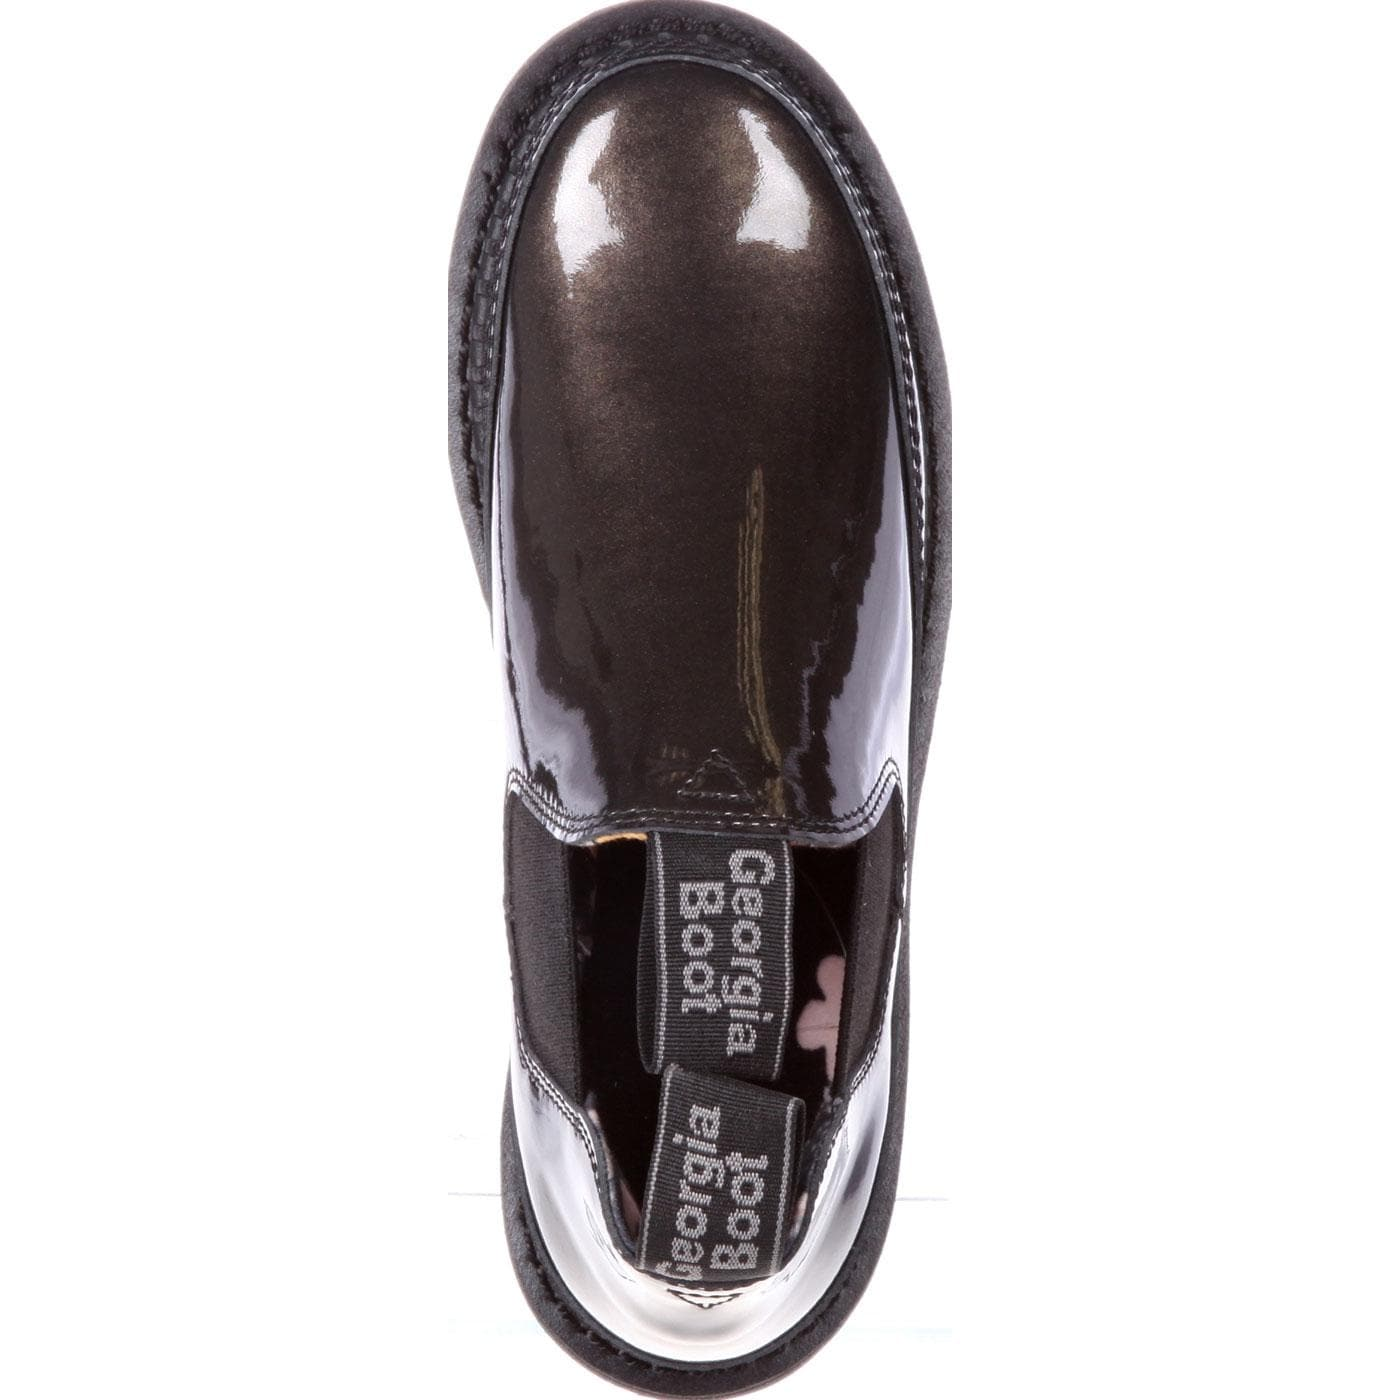 99002e9db57 Shop Georgia Giant  Women s Black Patent Leather Romeo Shoes - Free  Shipping On Orders Over  45 - Overstock - 27165118